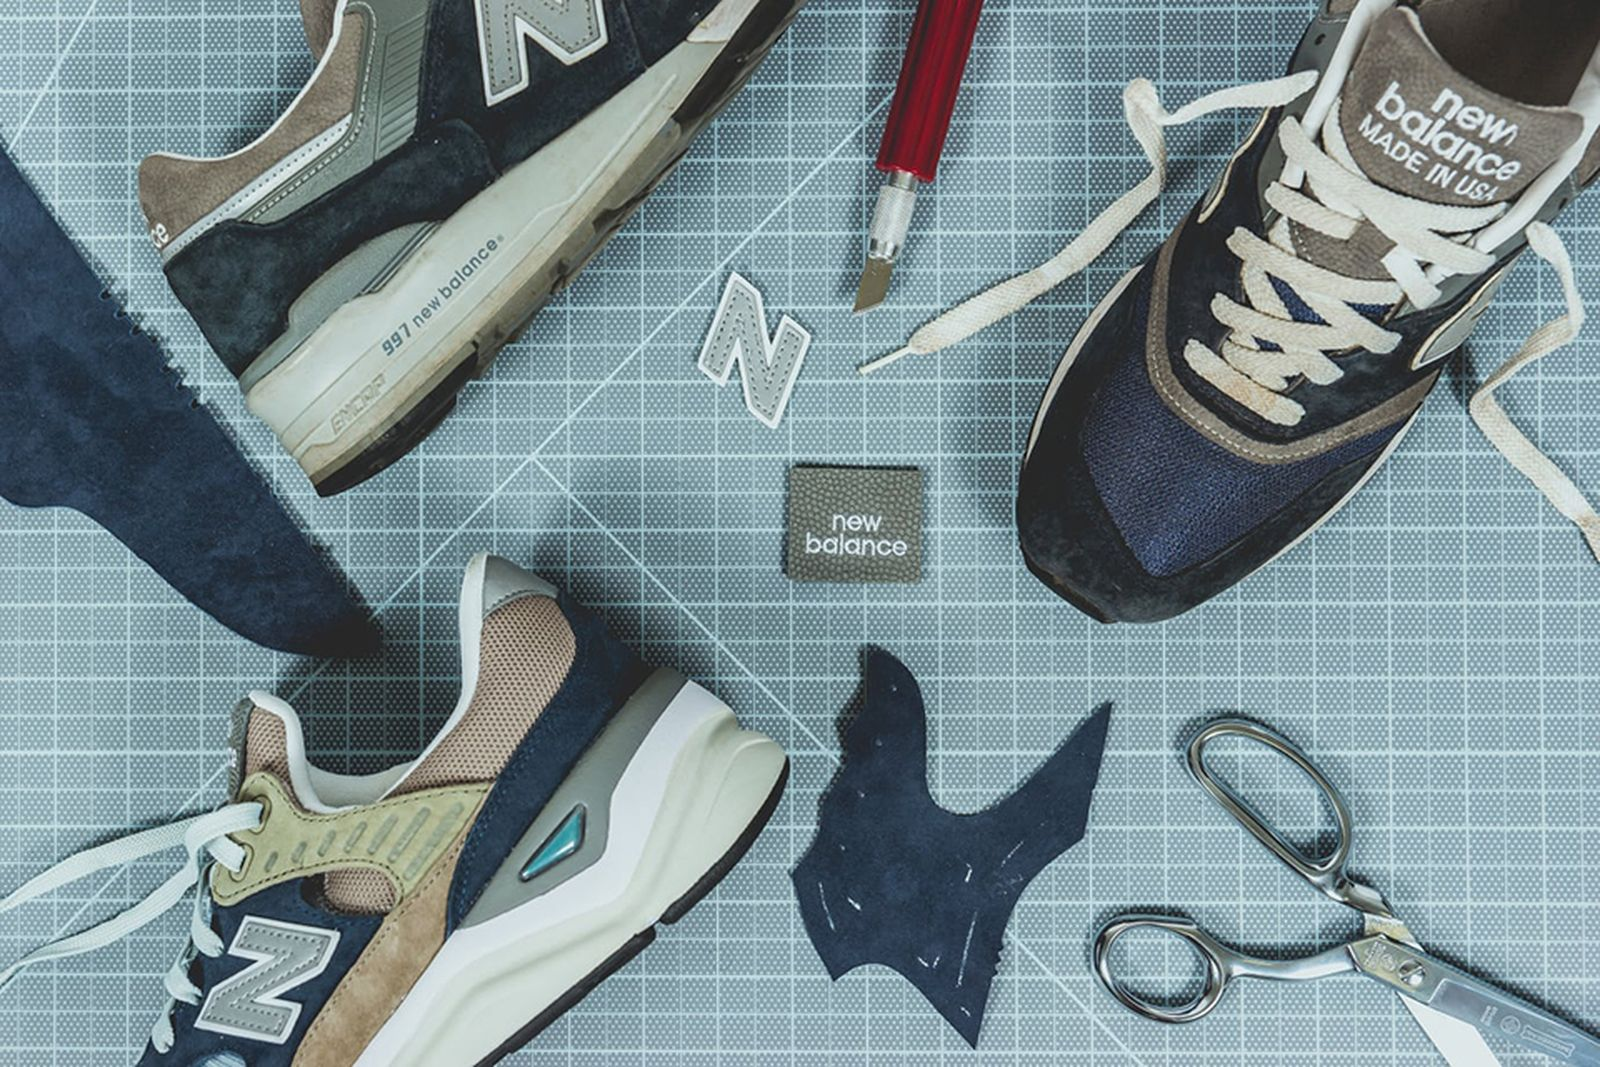 packer new balance x 90 recon infinity edition release date price New Balance X-90 Recon packer shoes